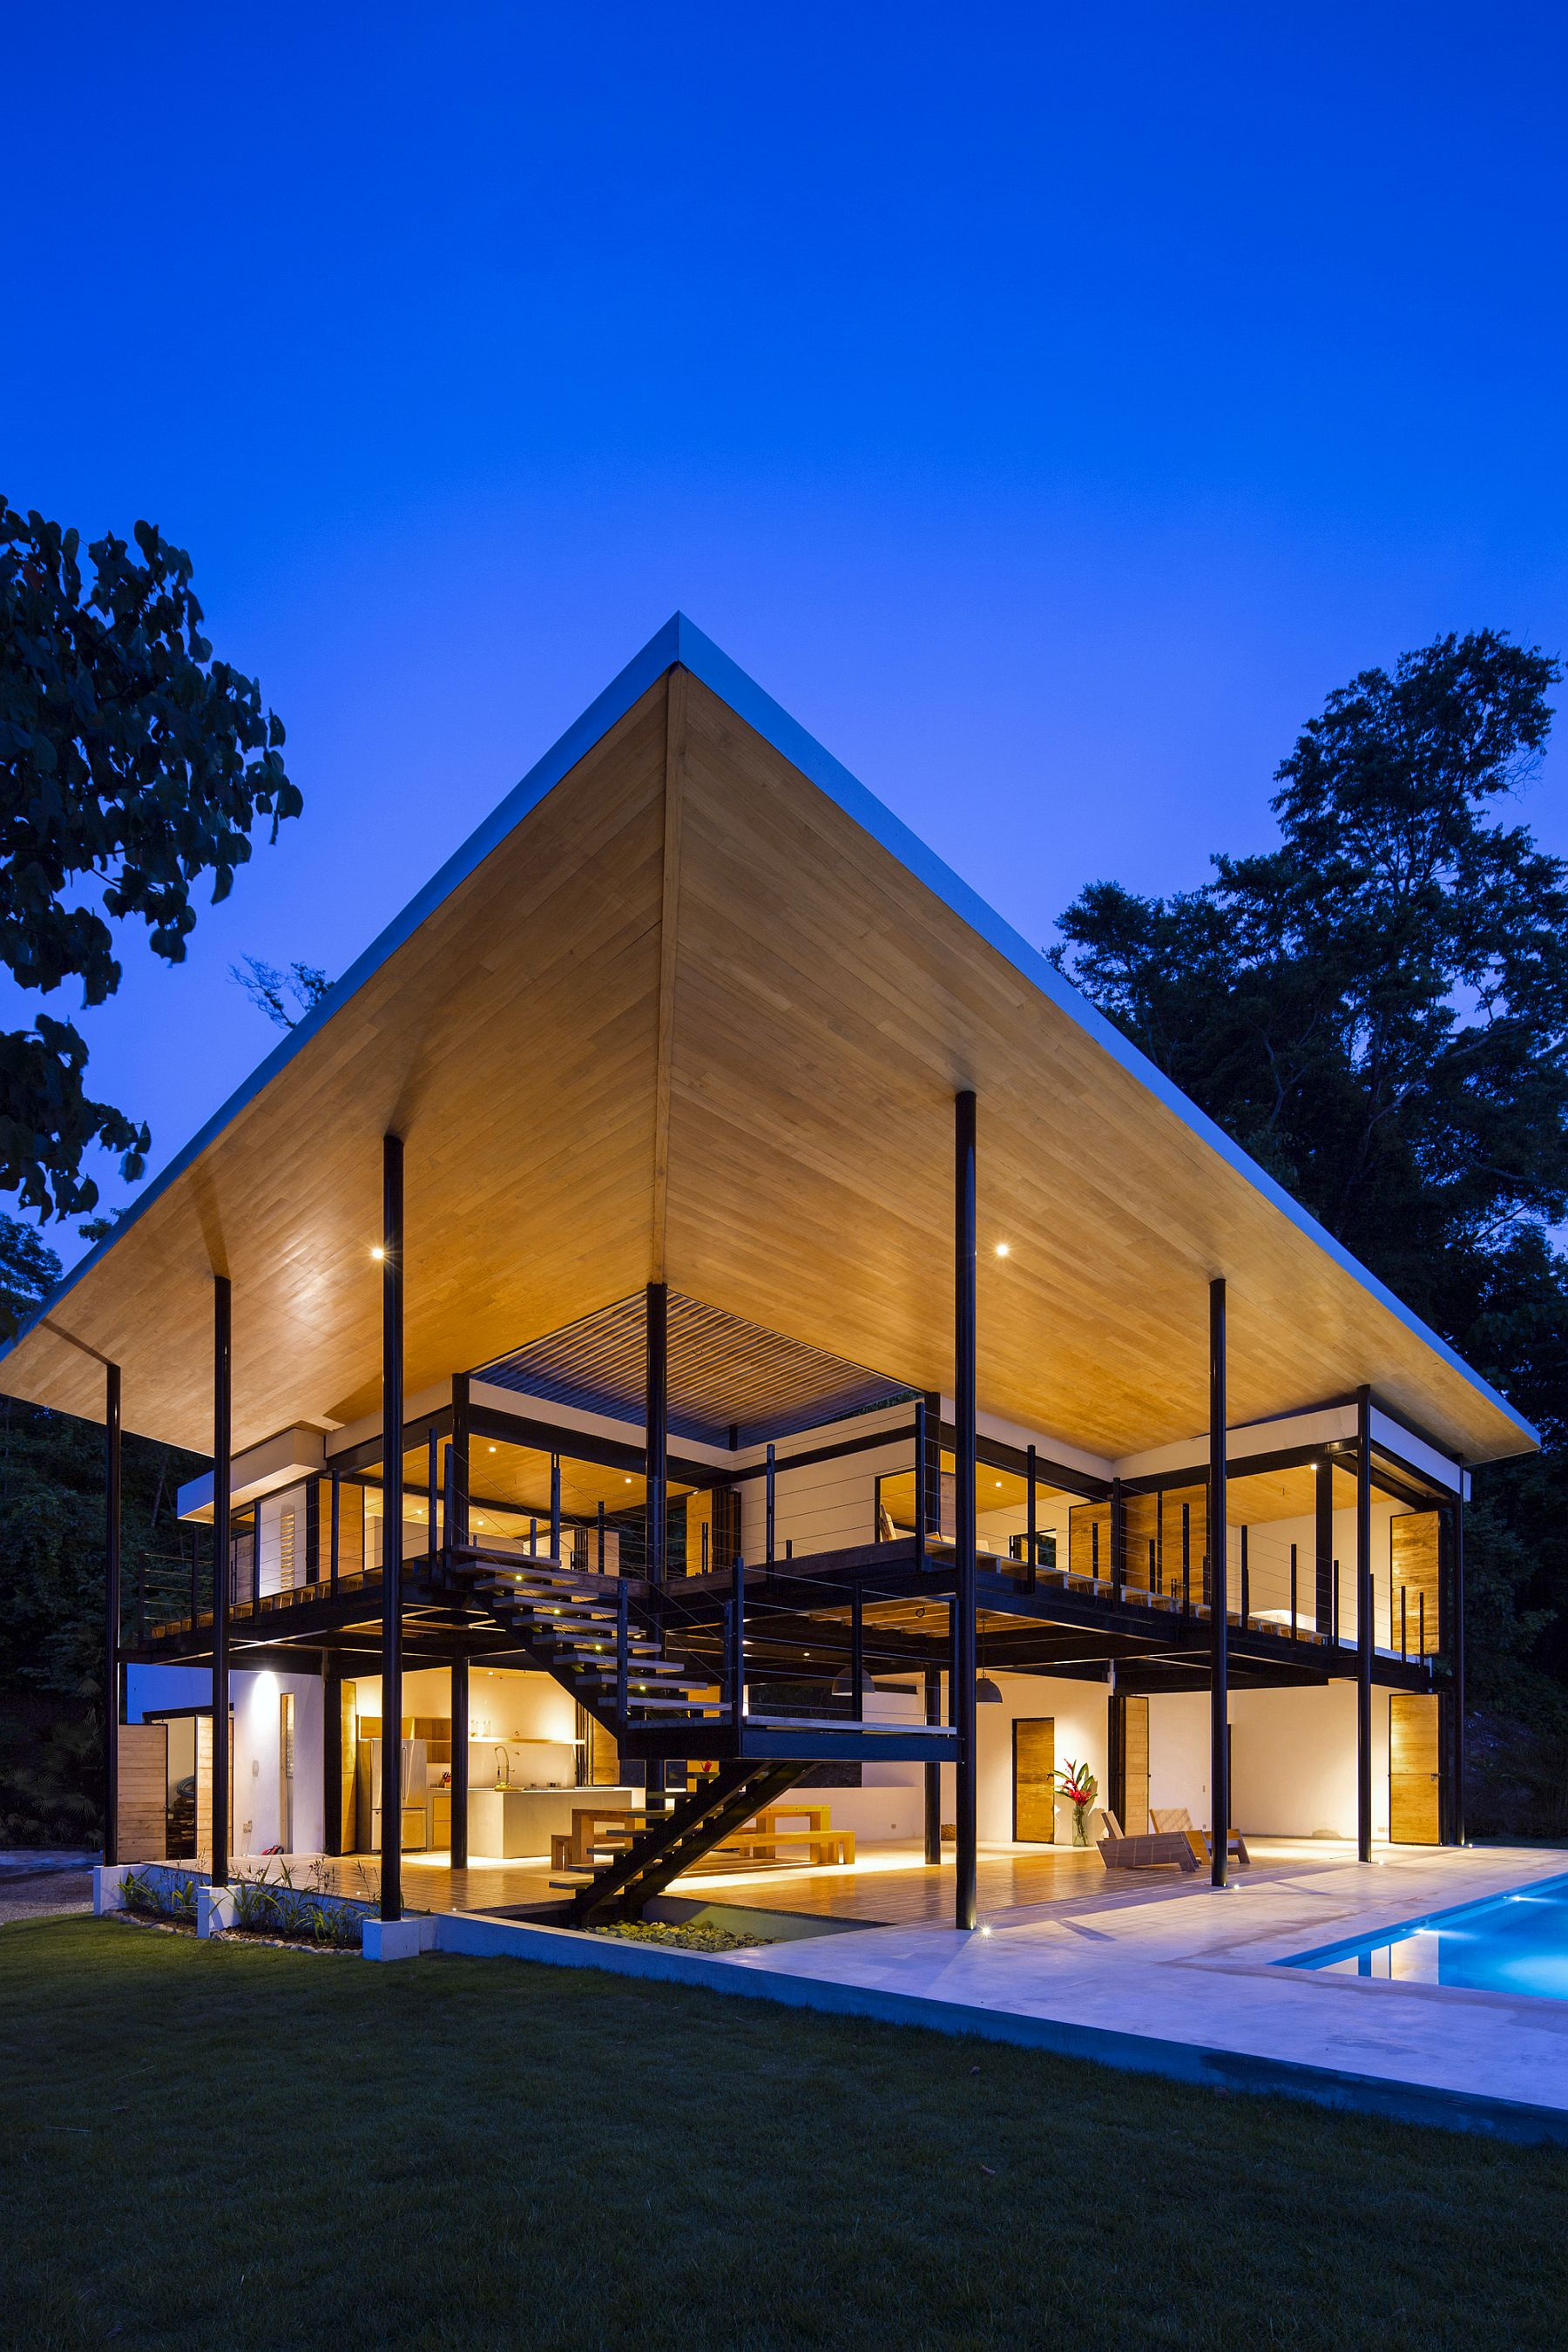 Elegant wooden structure give the home a unique silhouette